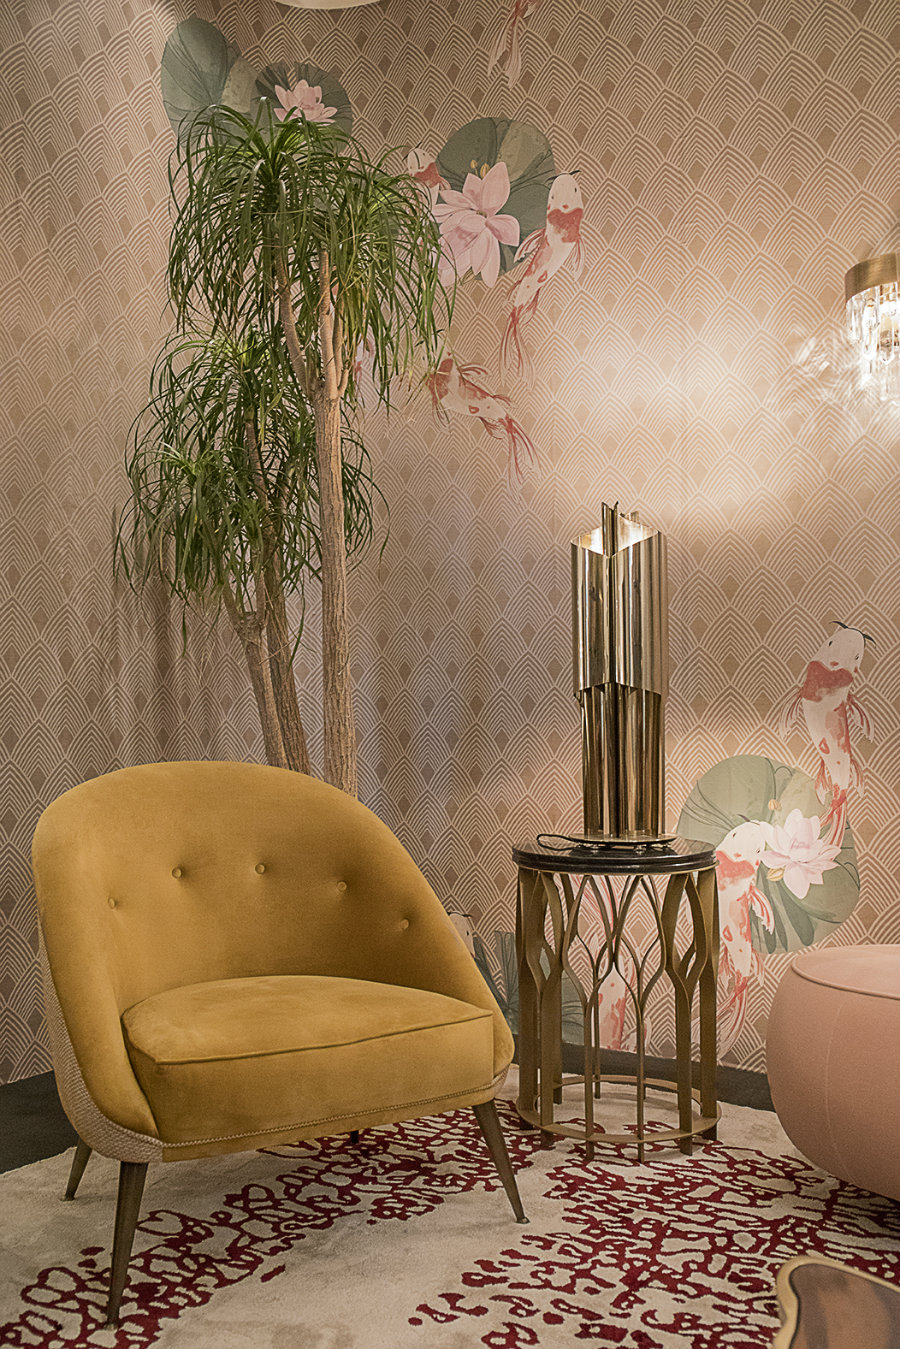 decorex Know CYRUS TABLE LIGHT at DECOREX 2018 oo